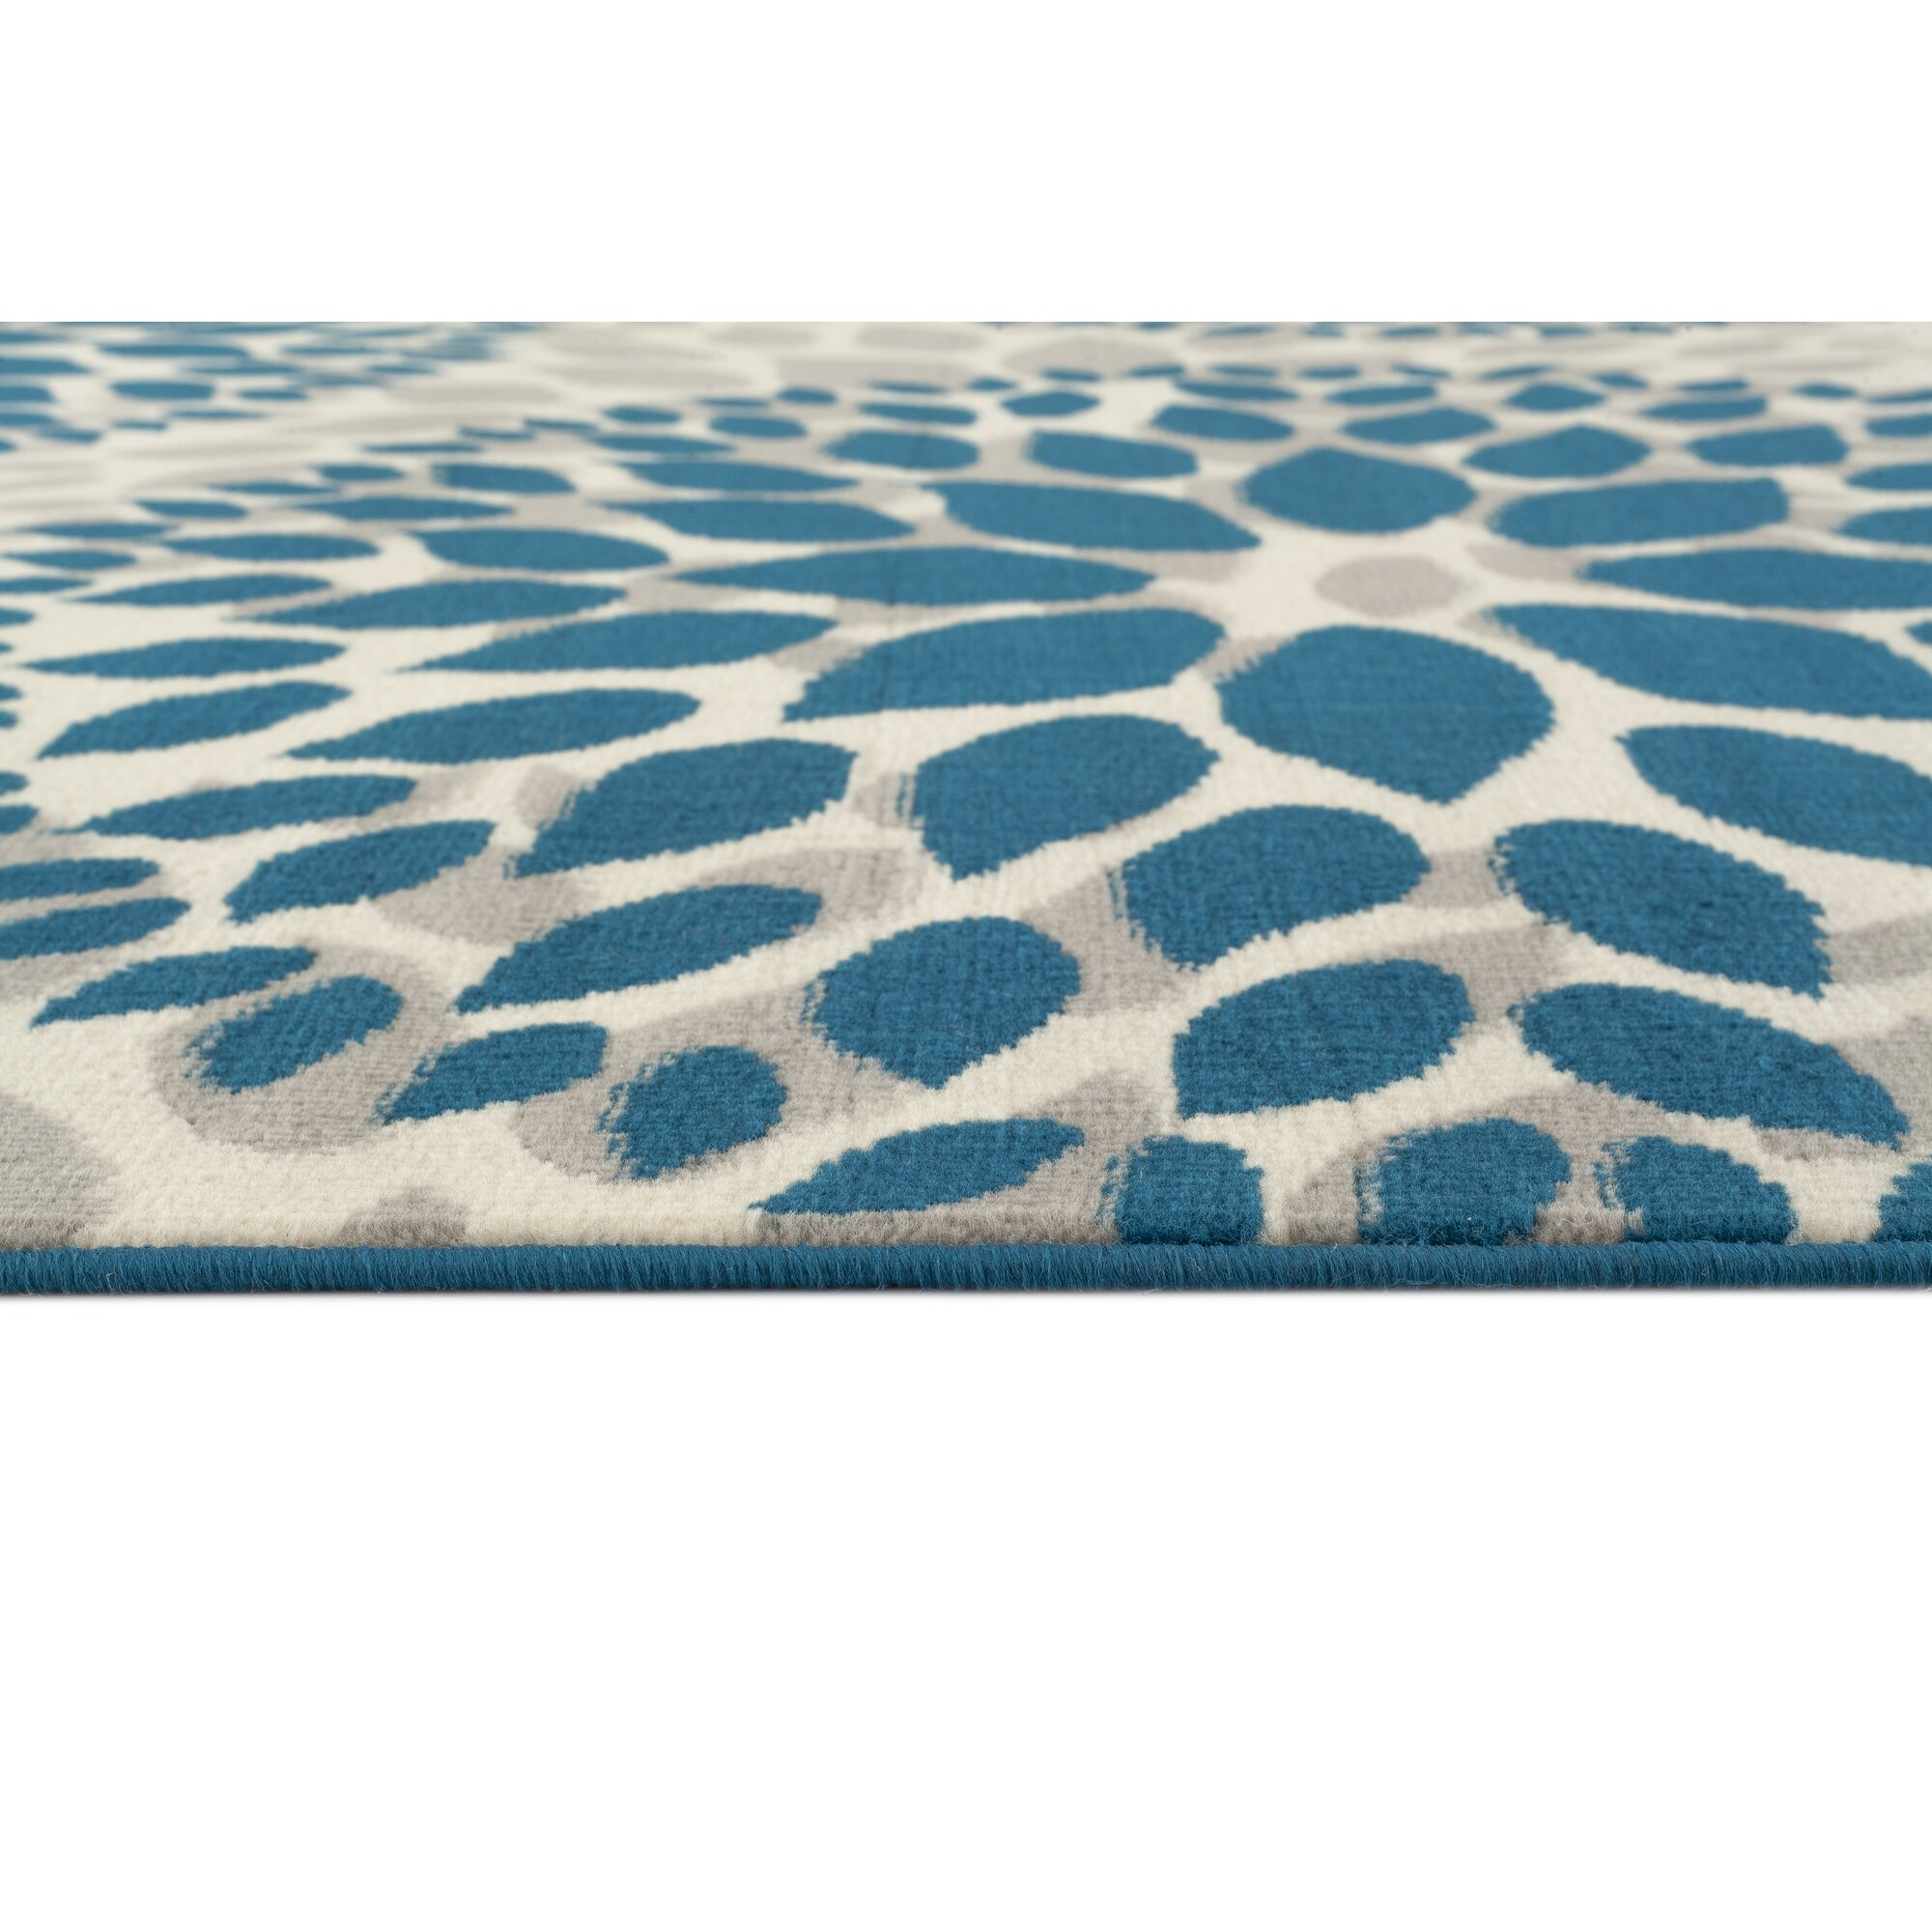 Throw Rugs At Dollar General: World Rug Gallery Newport Blue Area Rug & Reviews